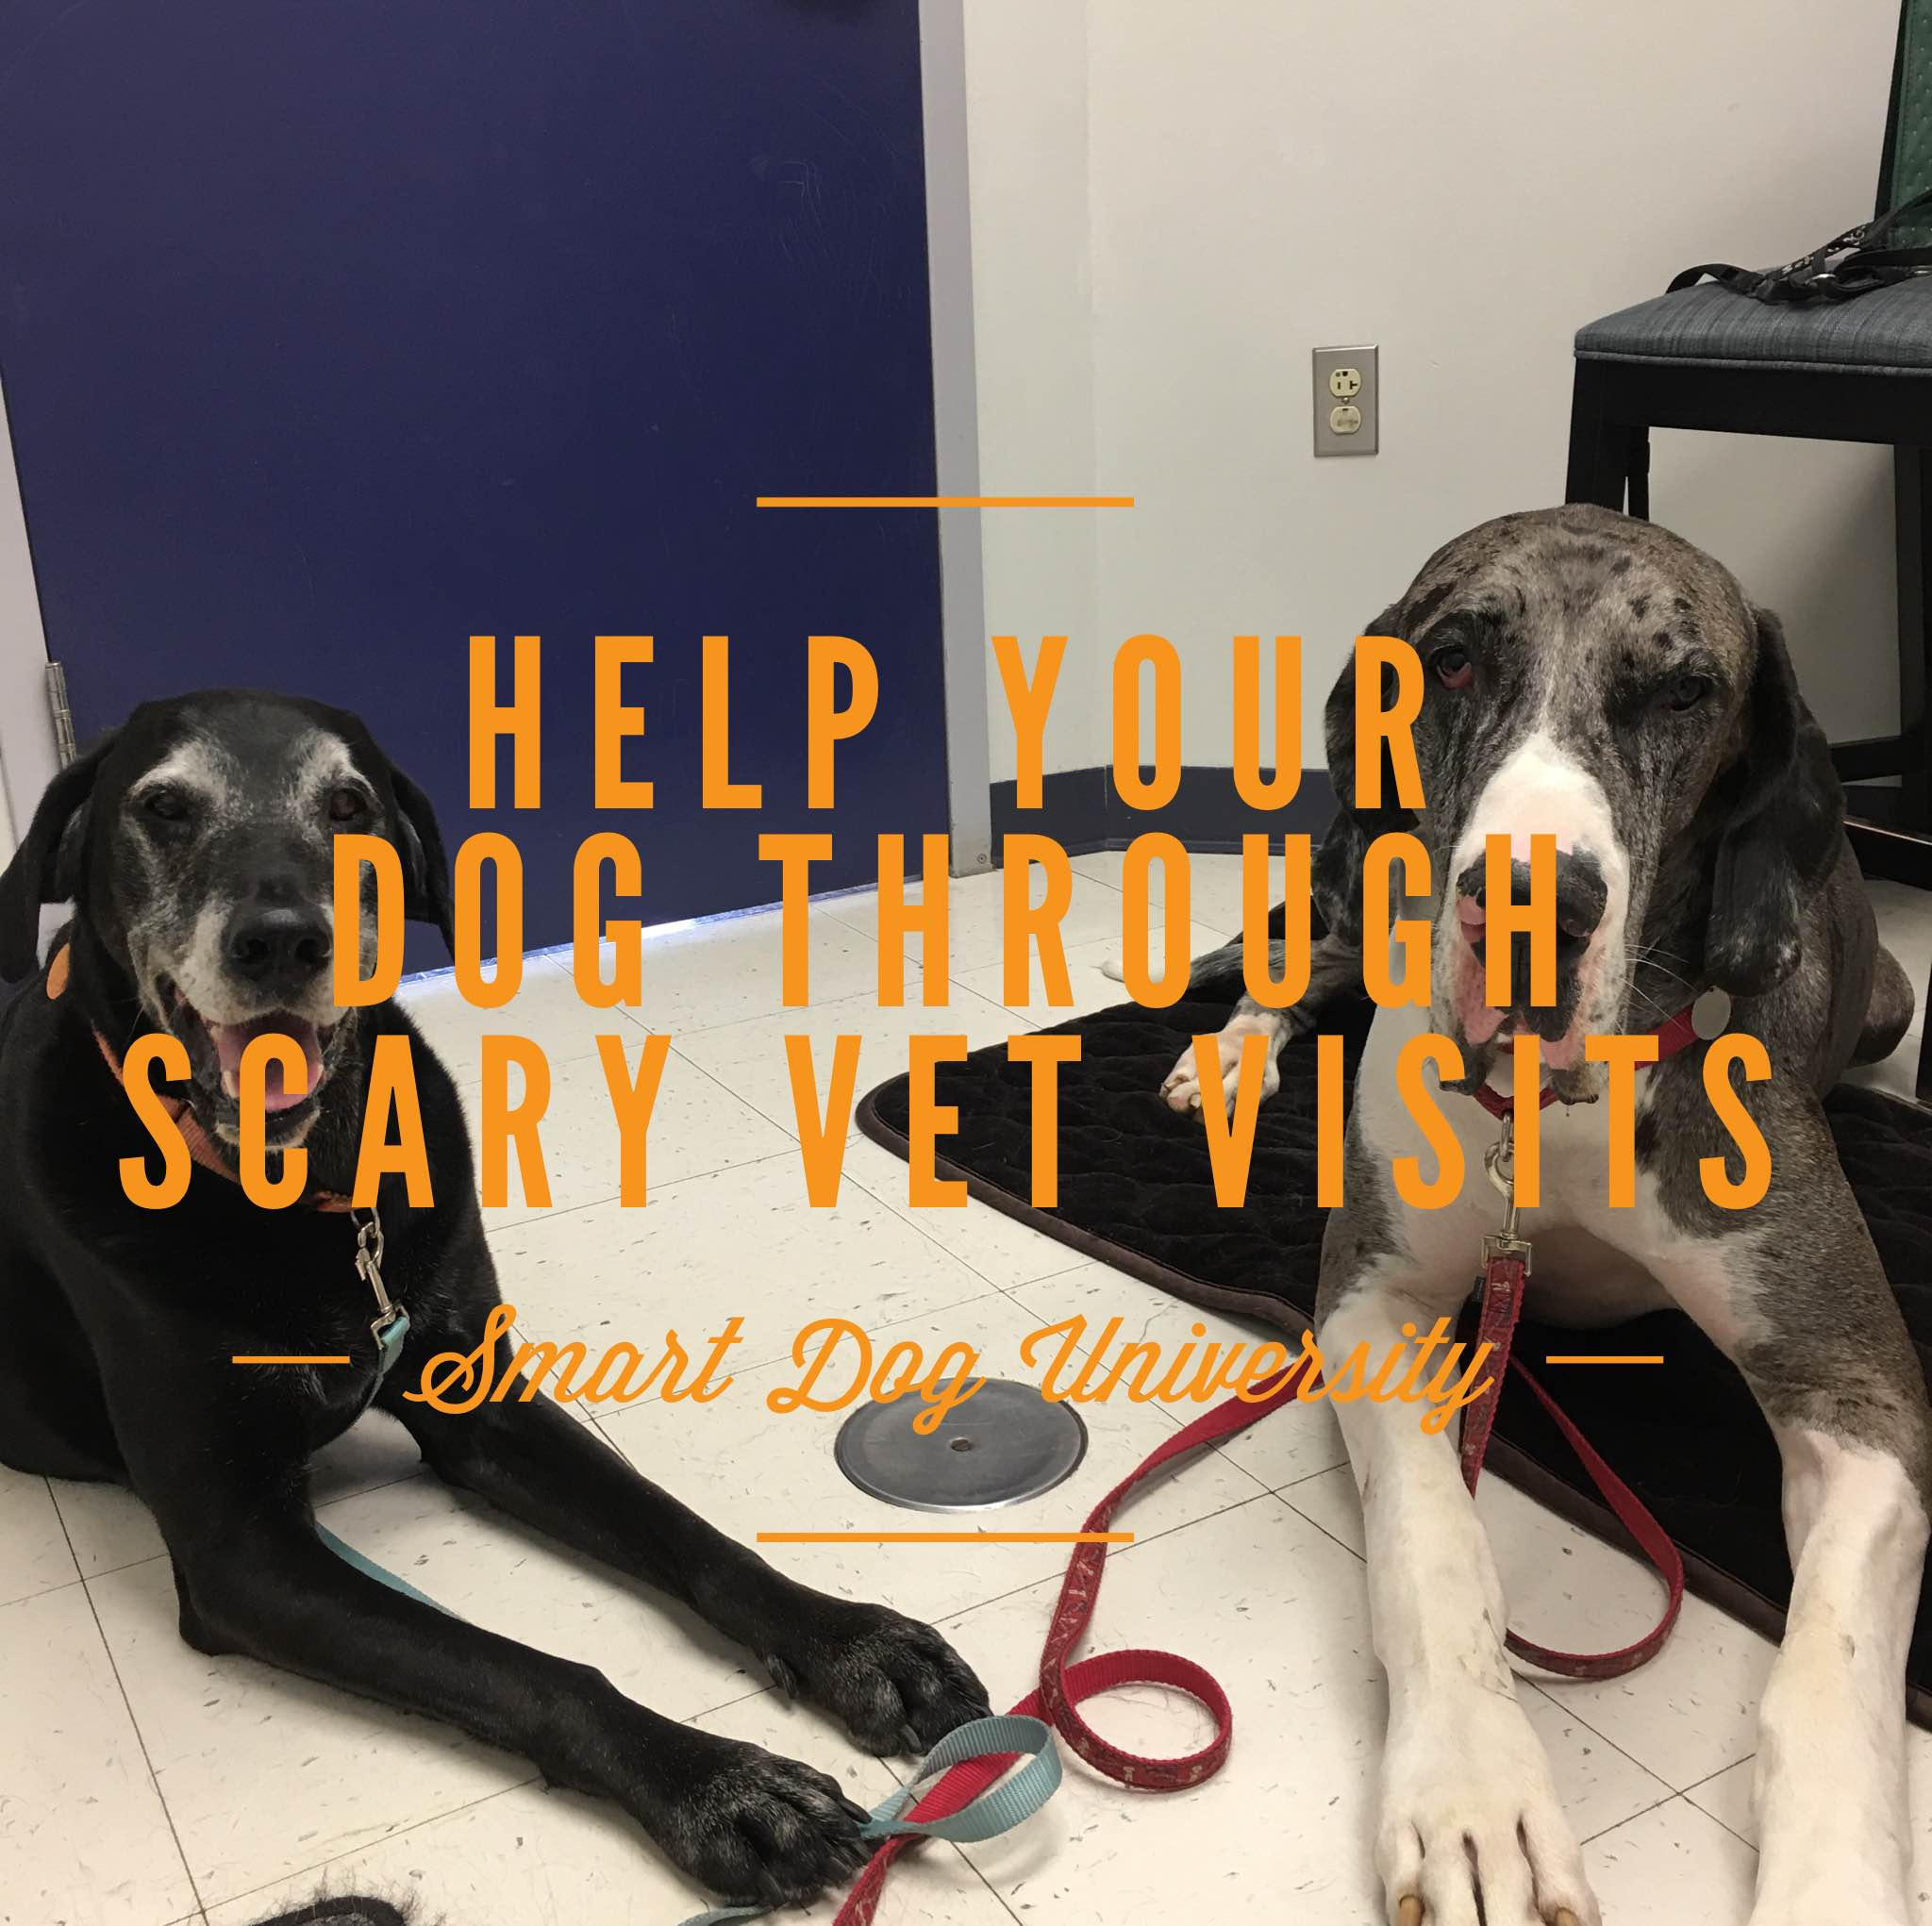 scary veterinary visits, dog training, vet visits, puppy training, scary vet, scared dog, Smart Dog University, clicker, positive, Frederick, Mt. Airy MD